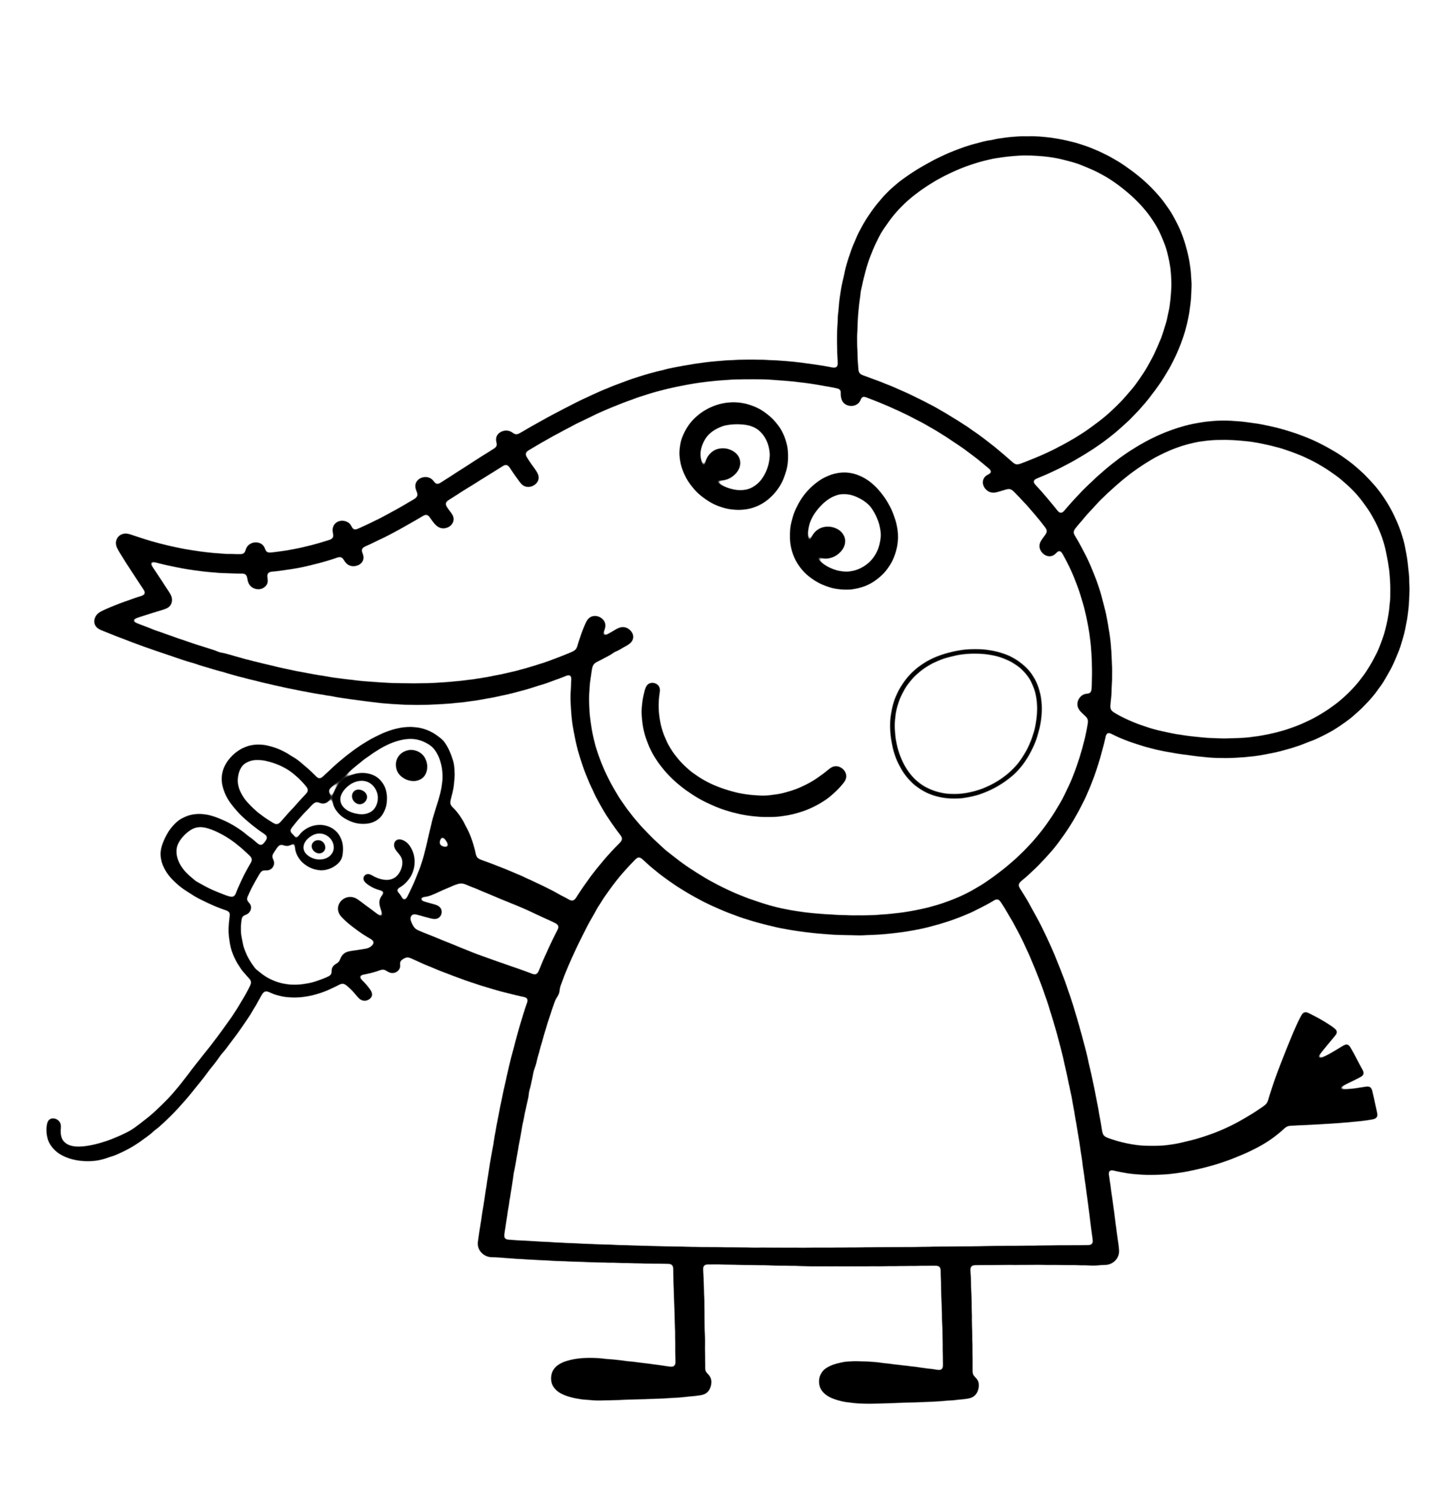 pepa pig coloring pages peppa pig coloring pages peppa pig coloring pages pepa coloring pig pages